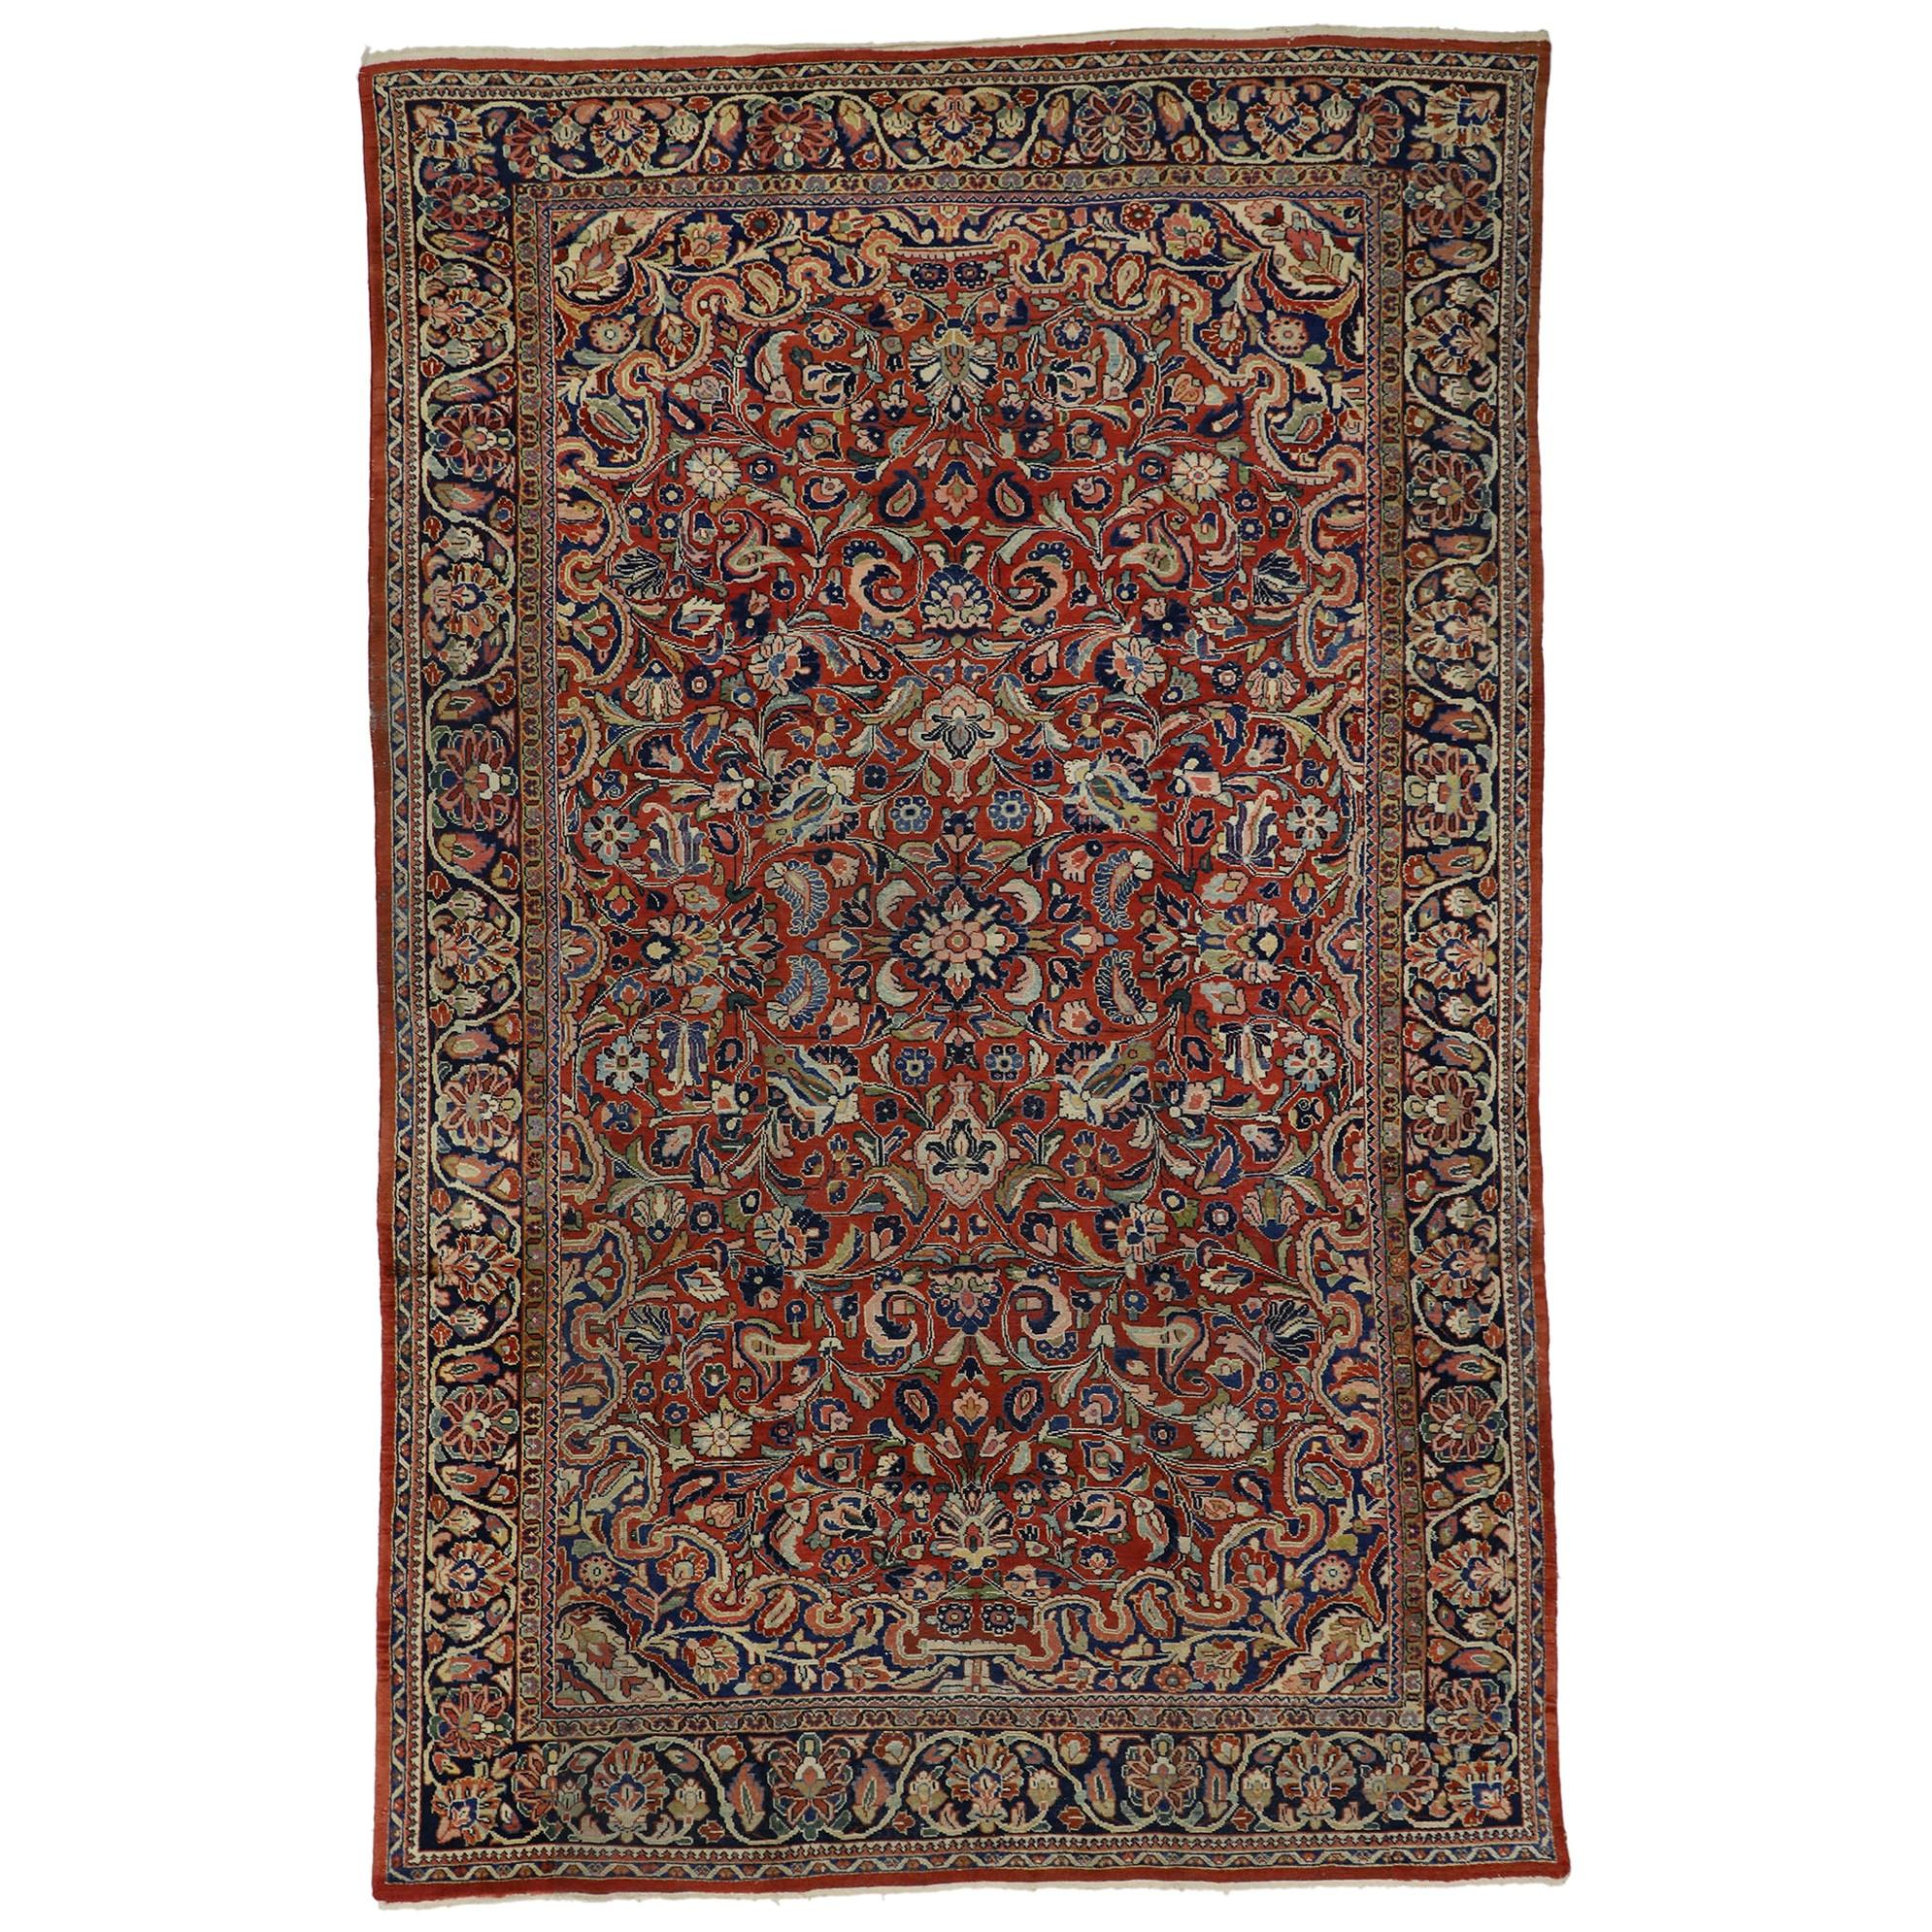 Antique Persian Mahal Area Rug with Modern Federal Style